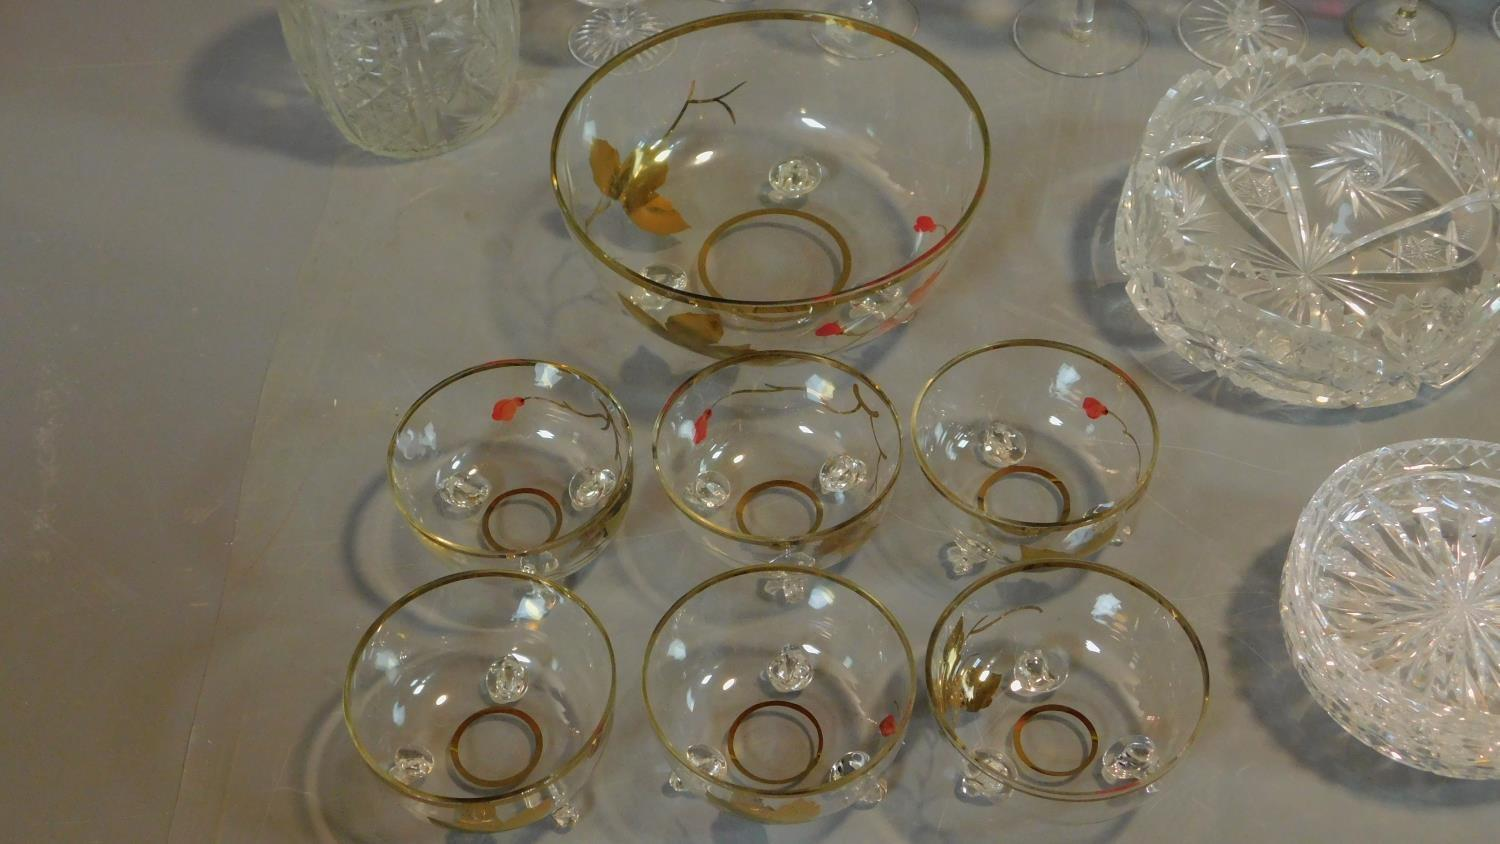 A vintage painted decorated dessert set and a collection of miscellaneous glass items. - Image 3 of 7